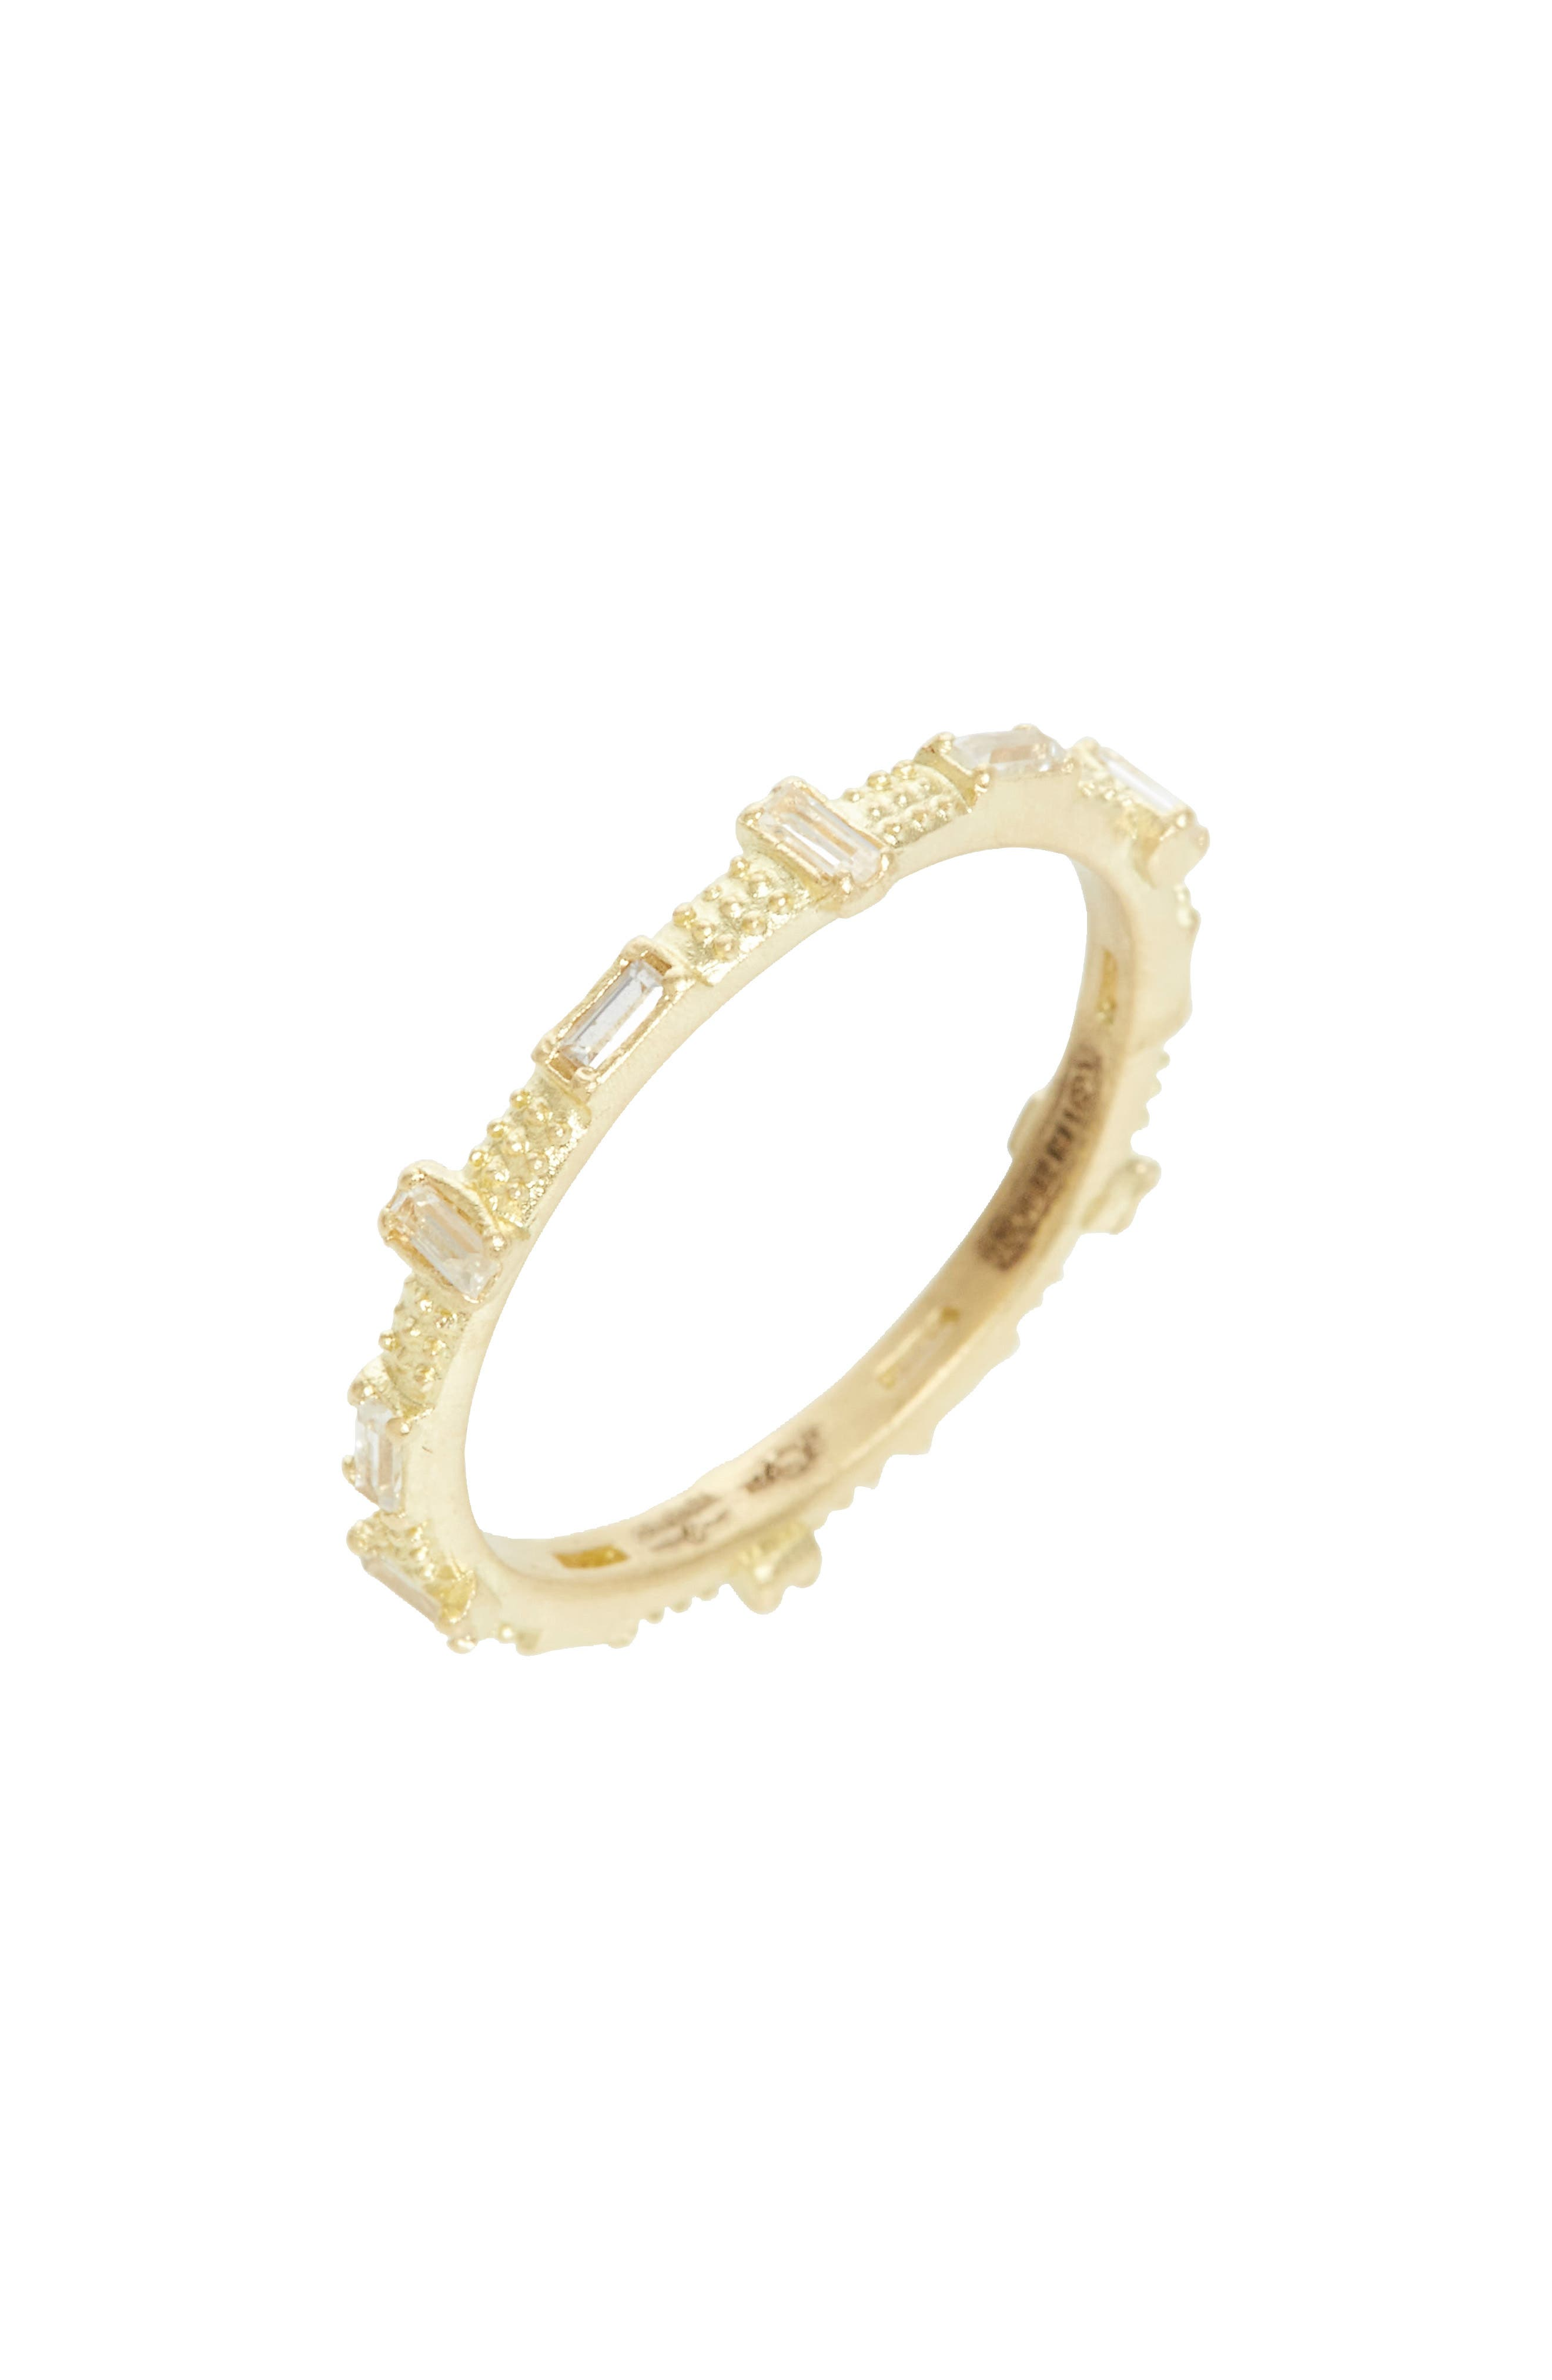 Sueño Baguette Sapphire Stacking Ring,                         Main,                         color, GOLD